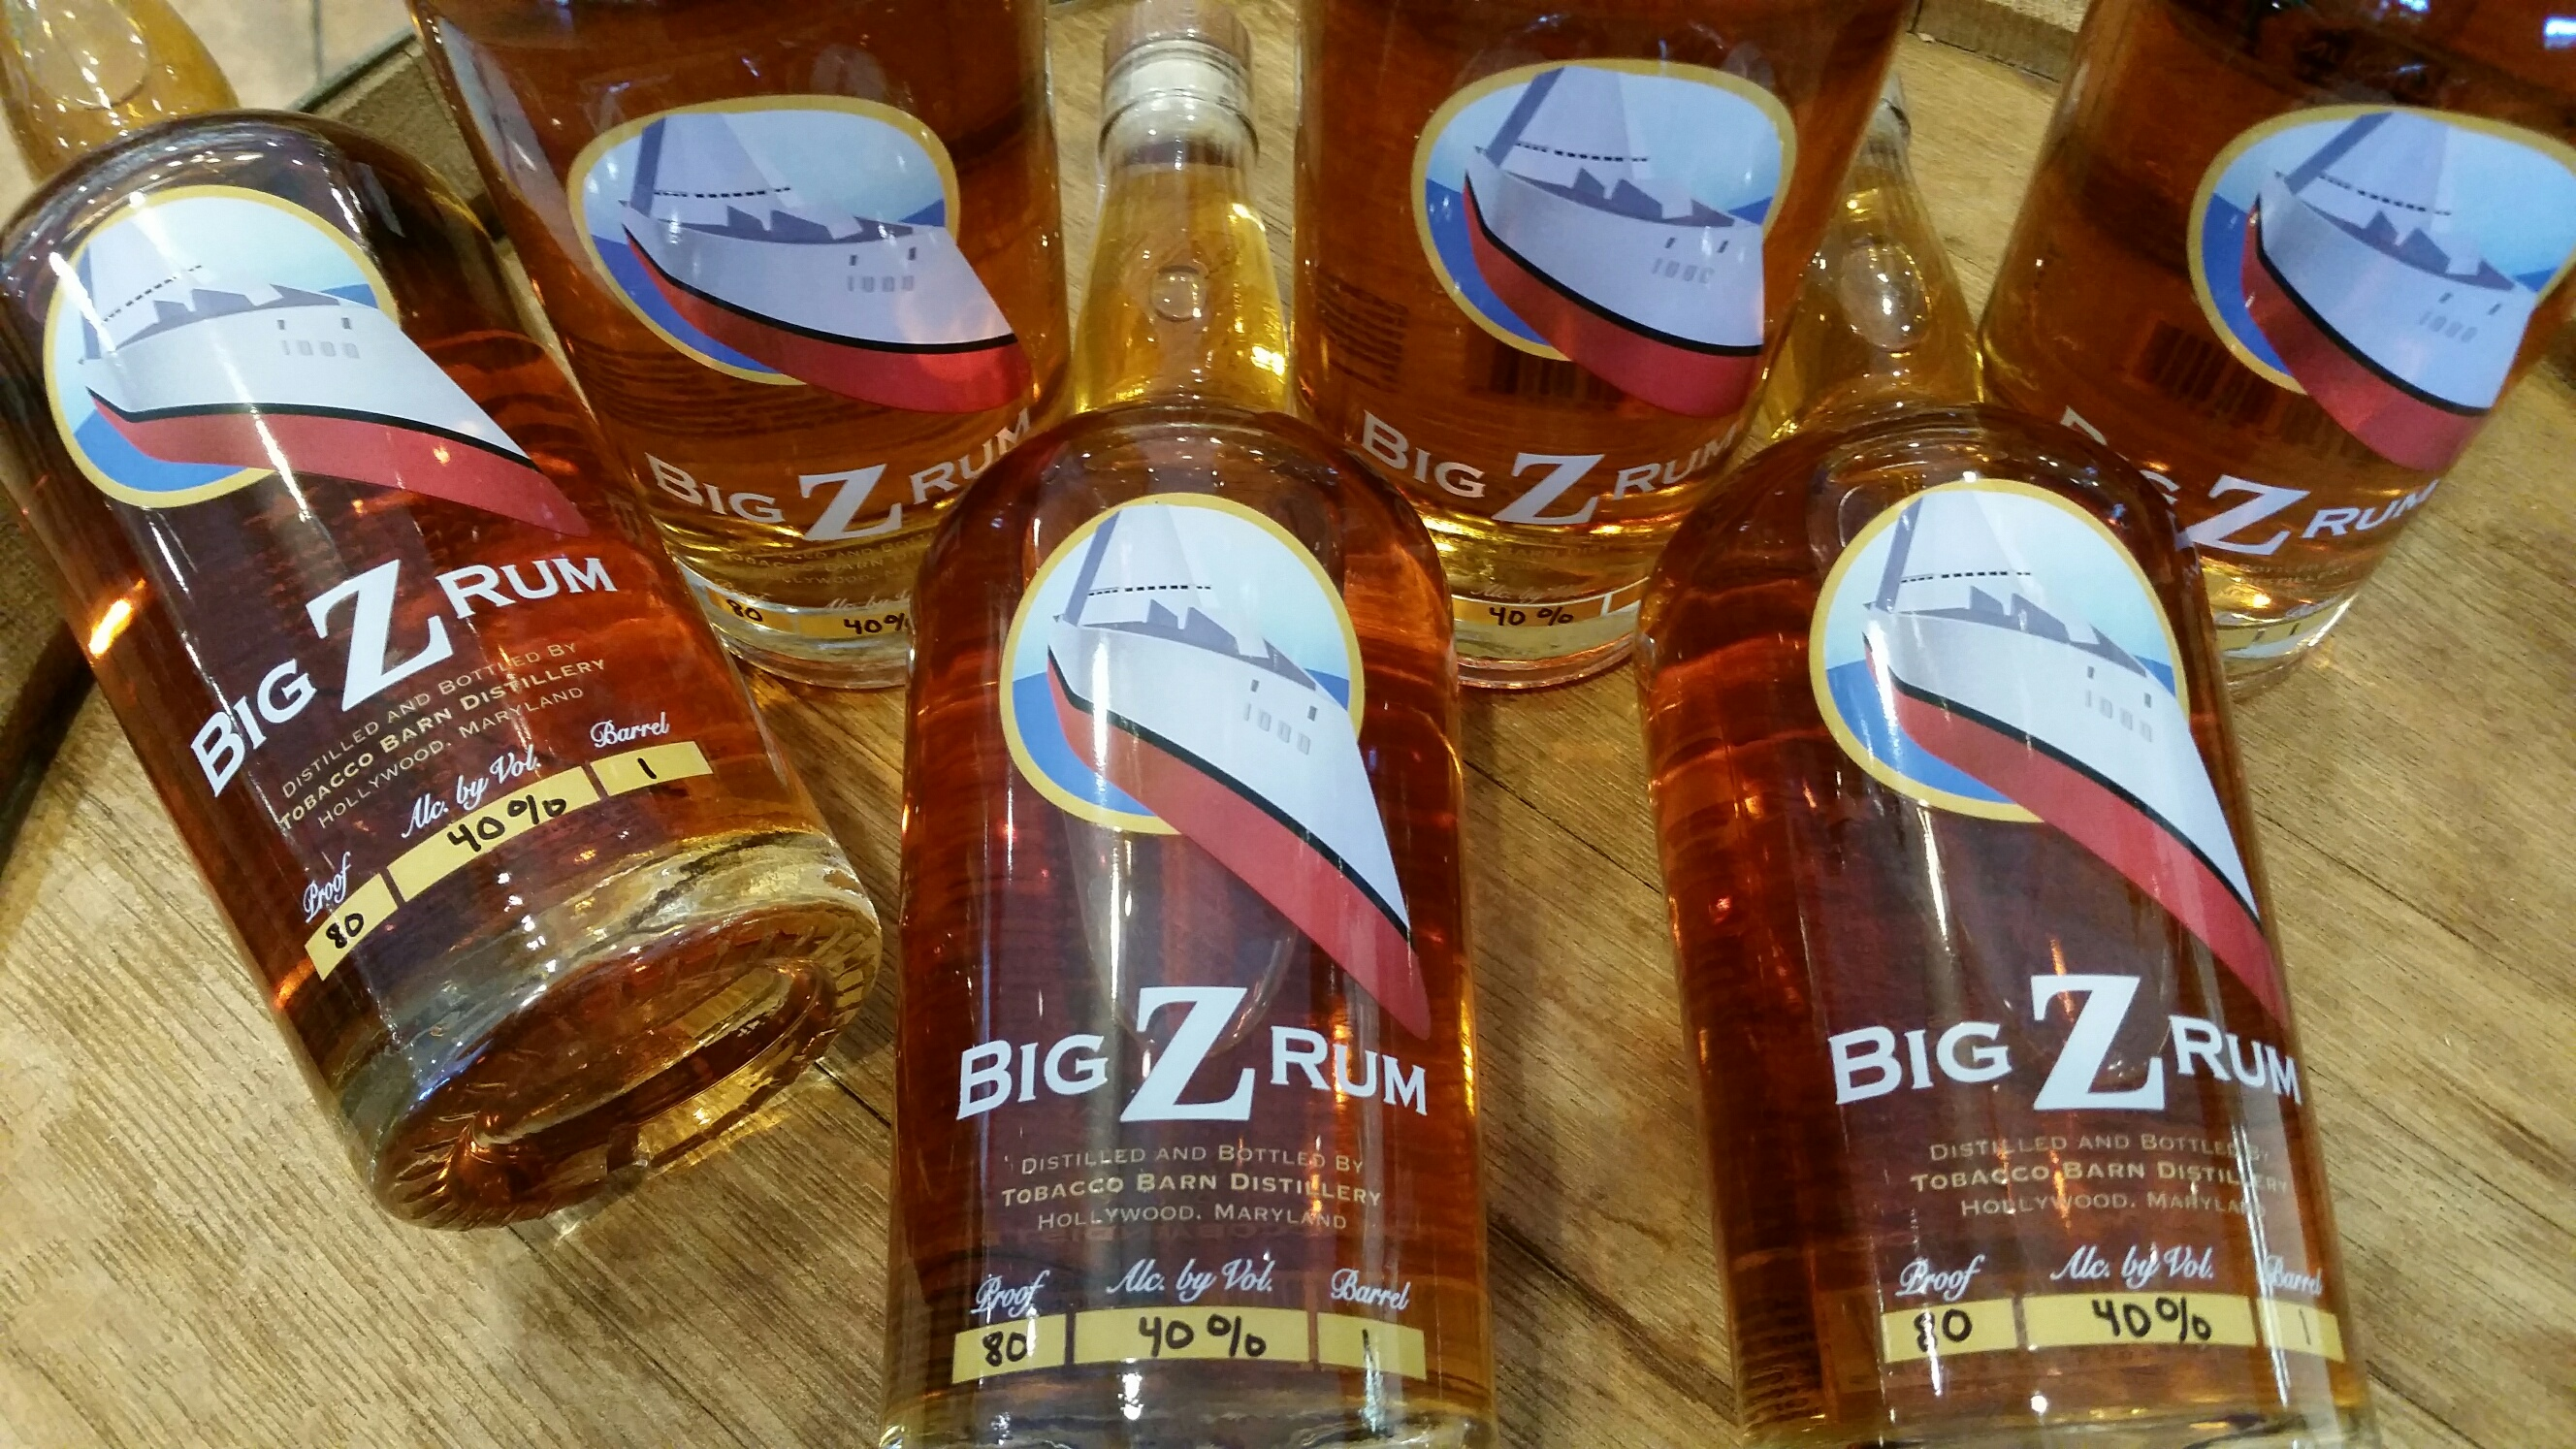 Big Z Rum from Tobacco Barn Distillery